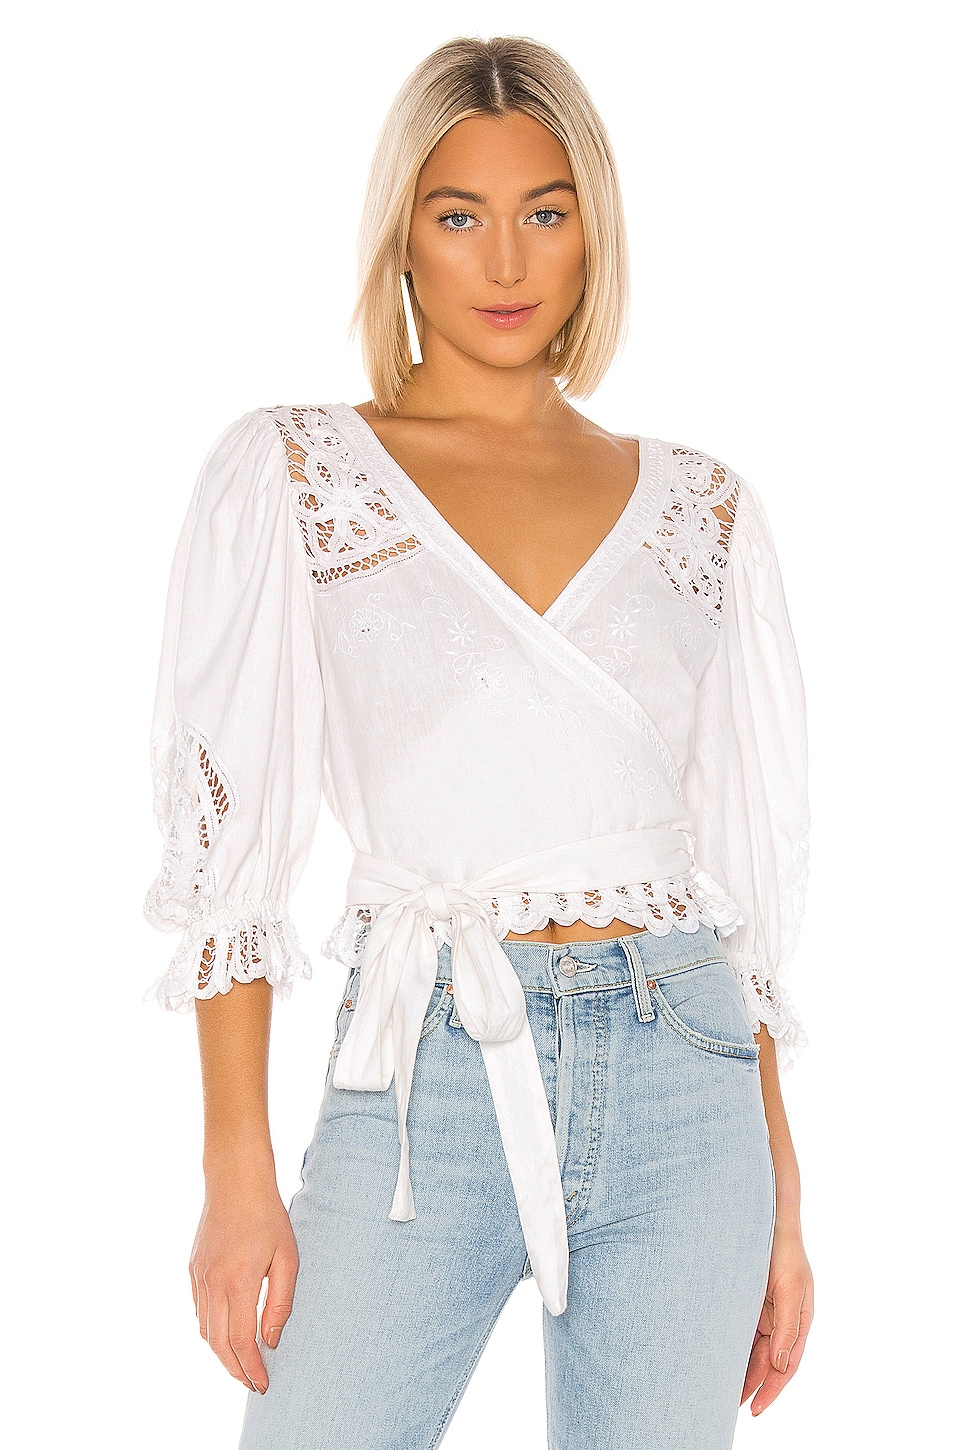 LoveShackFancy Domino Top en White